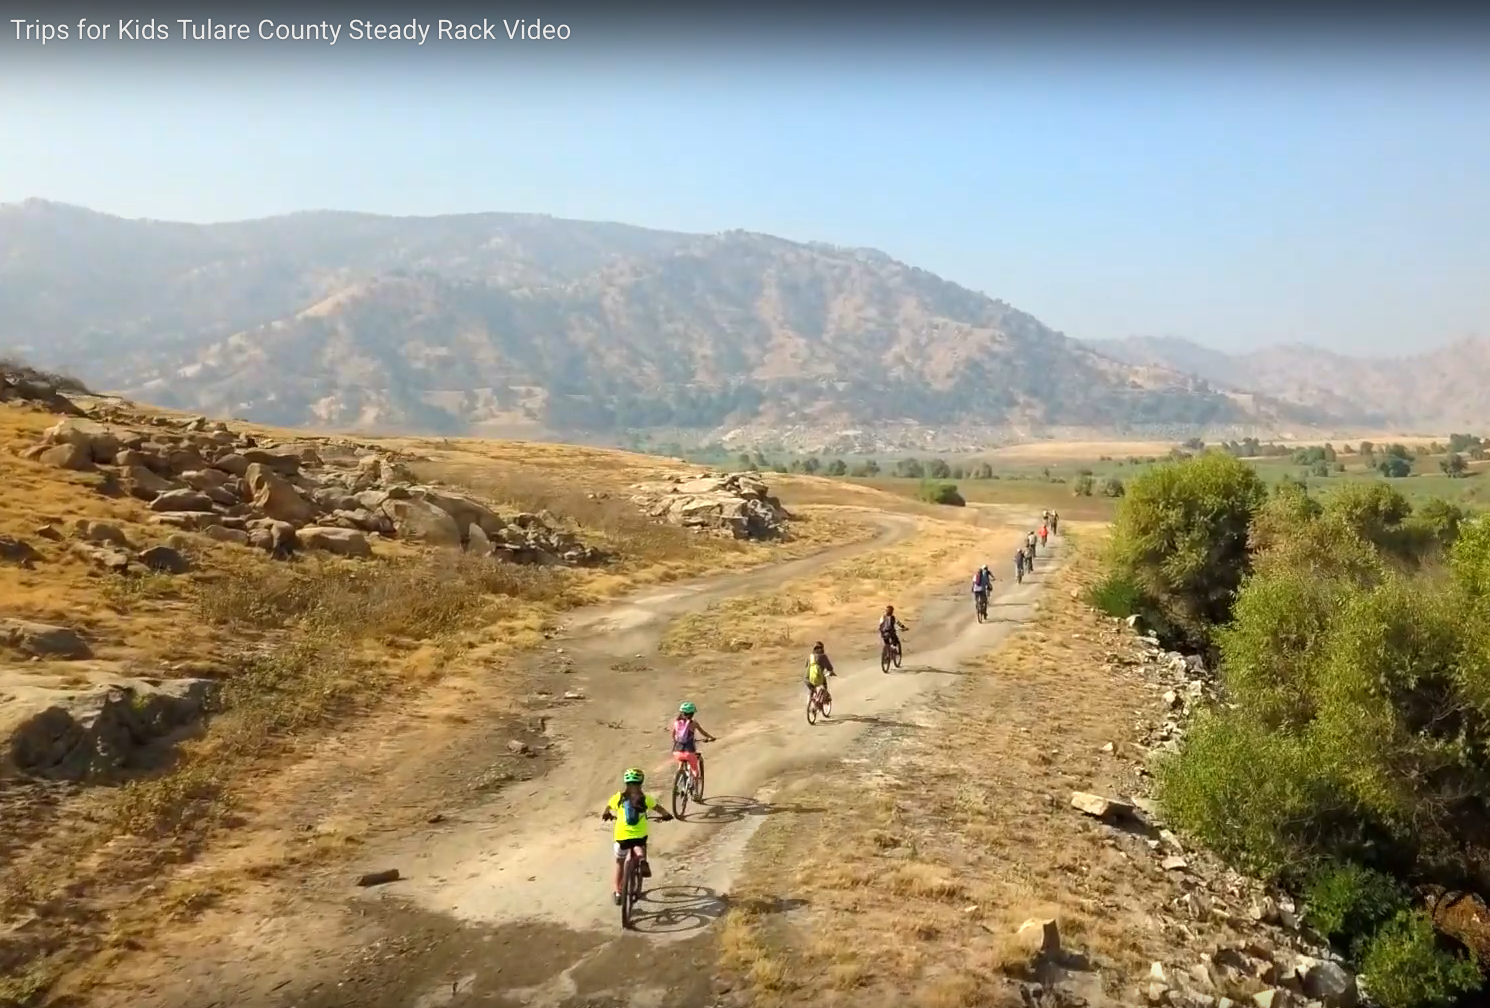 Chapter Video Feature - A bird's eye view of the Trips for Kids Tulare County chapter's Discovery Ride program in action. (1 minute video; click here or image)